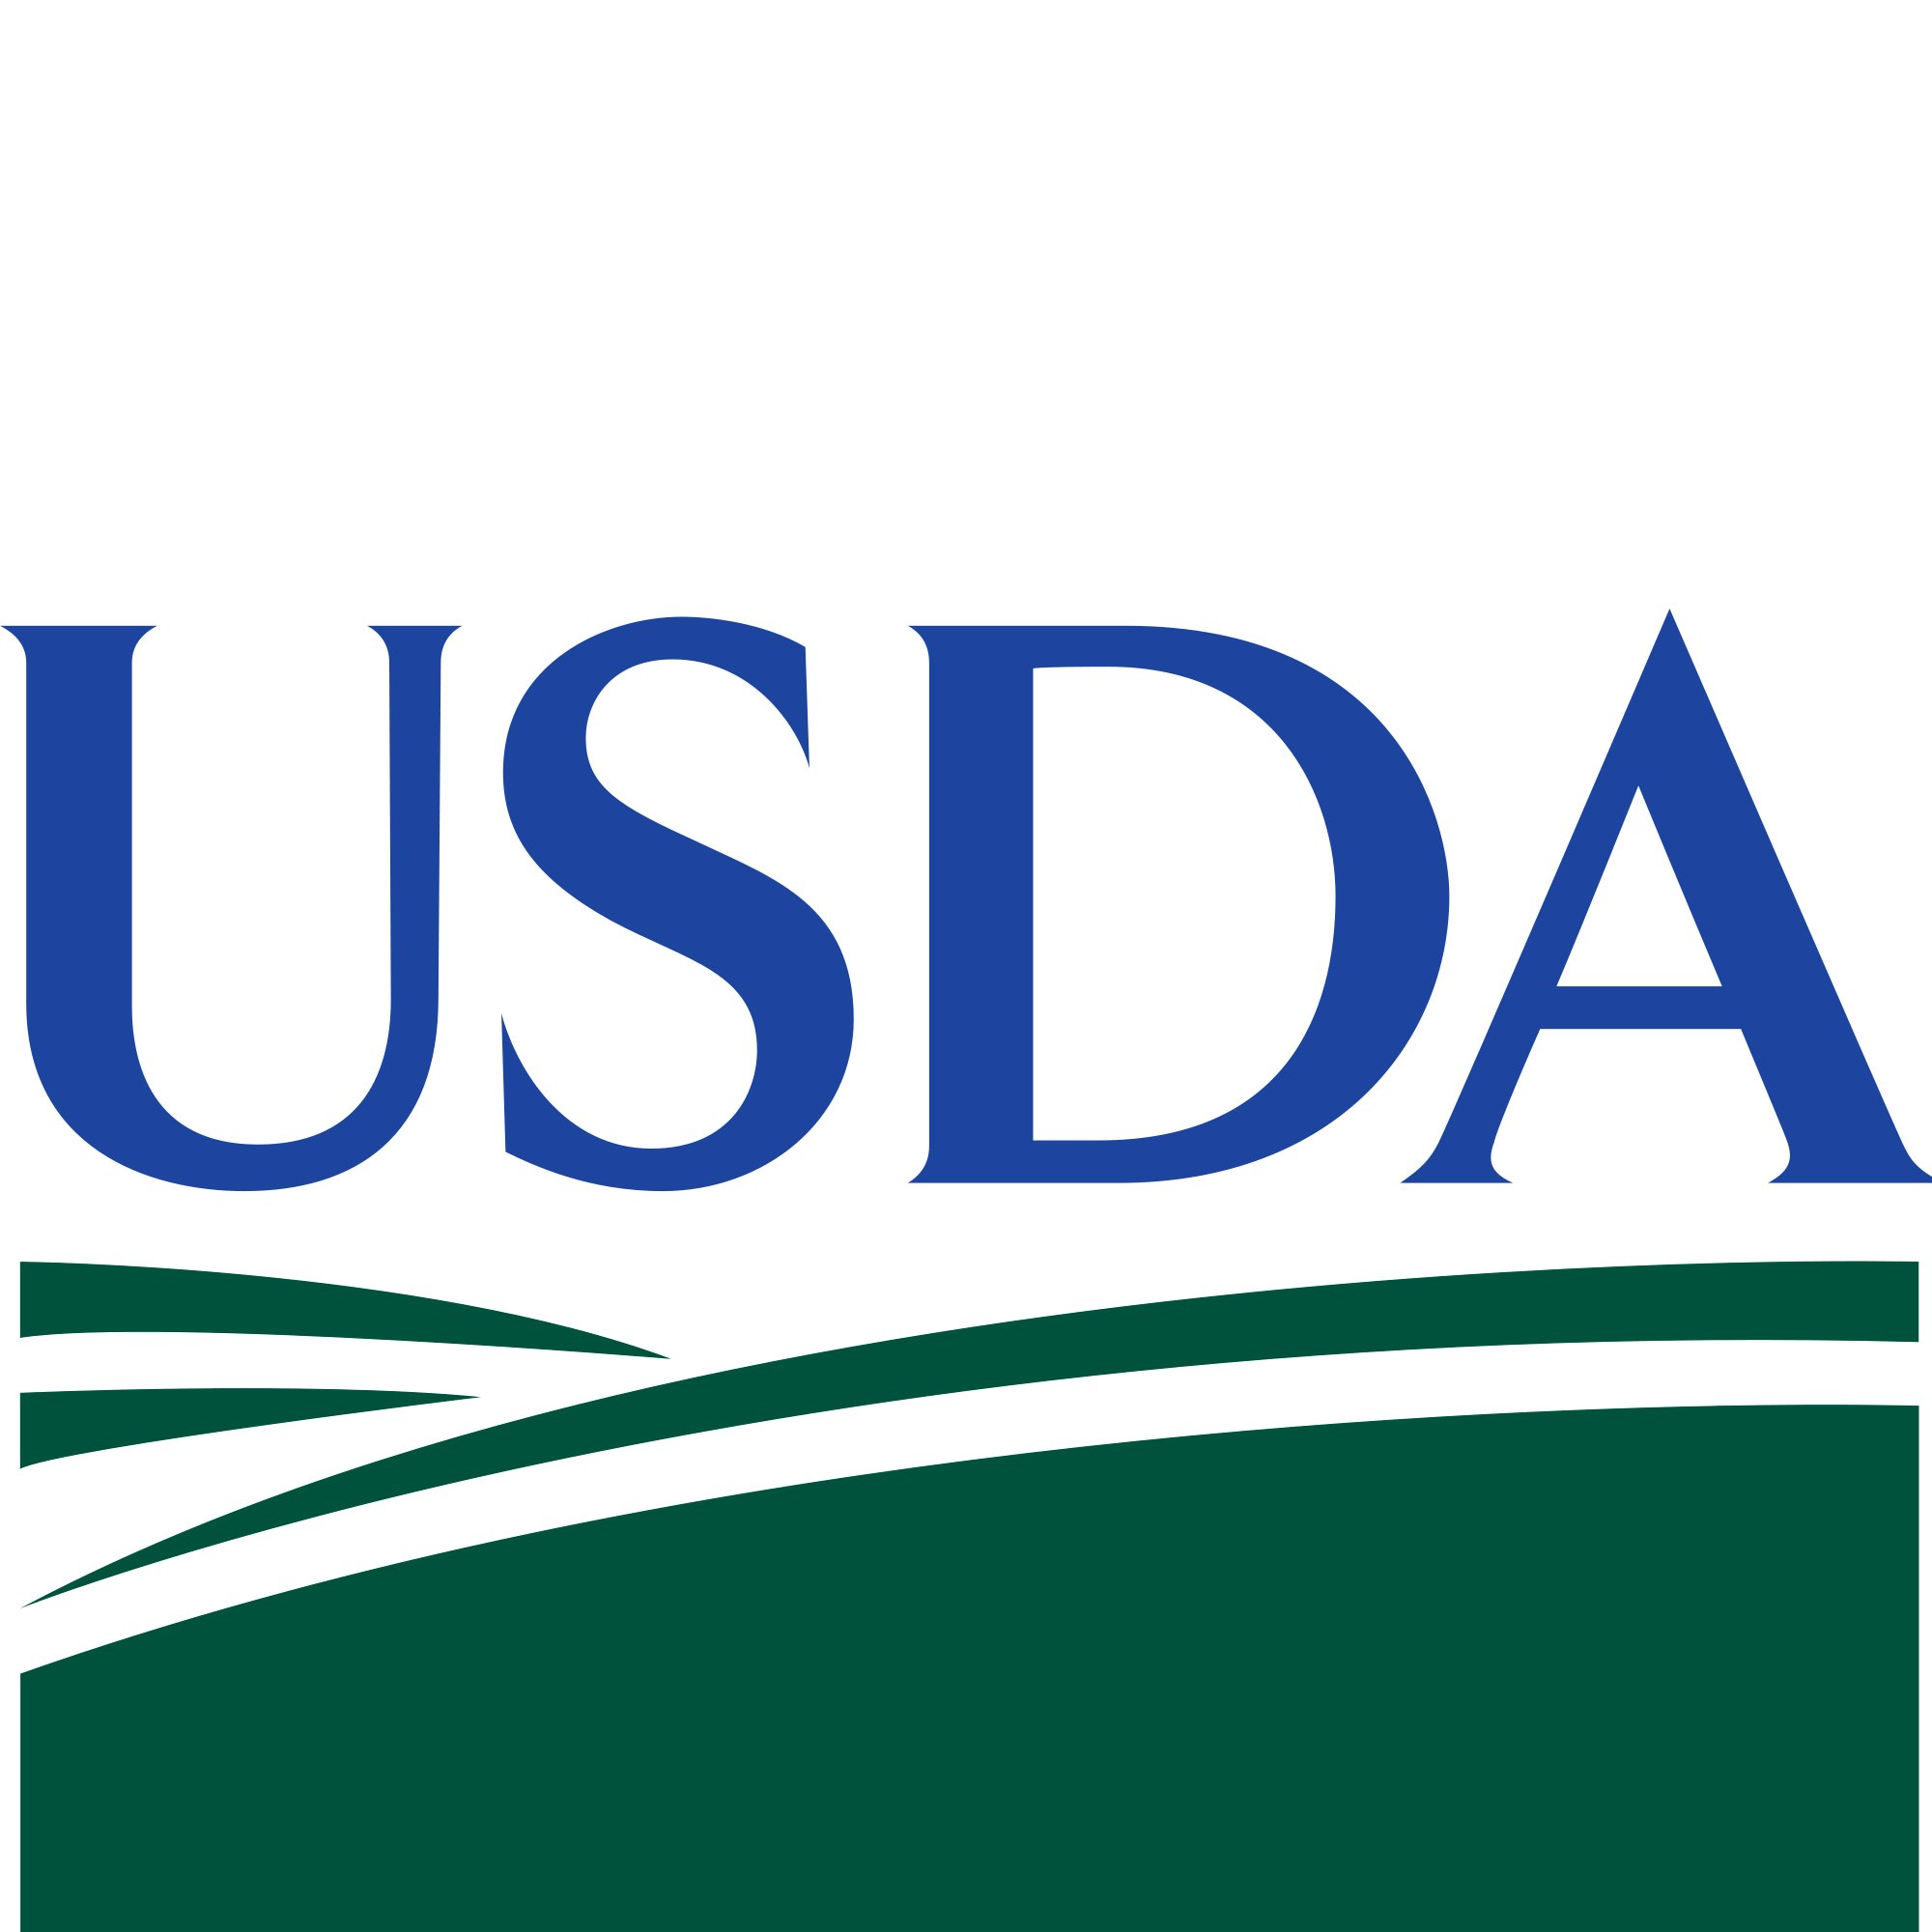 USDA Lawn Care, Landscape, & Weed Control Research Guide.